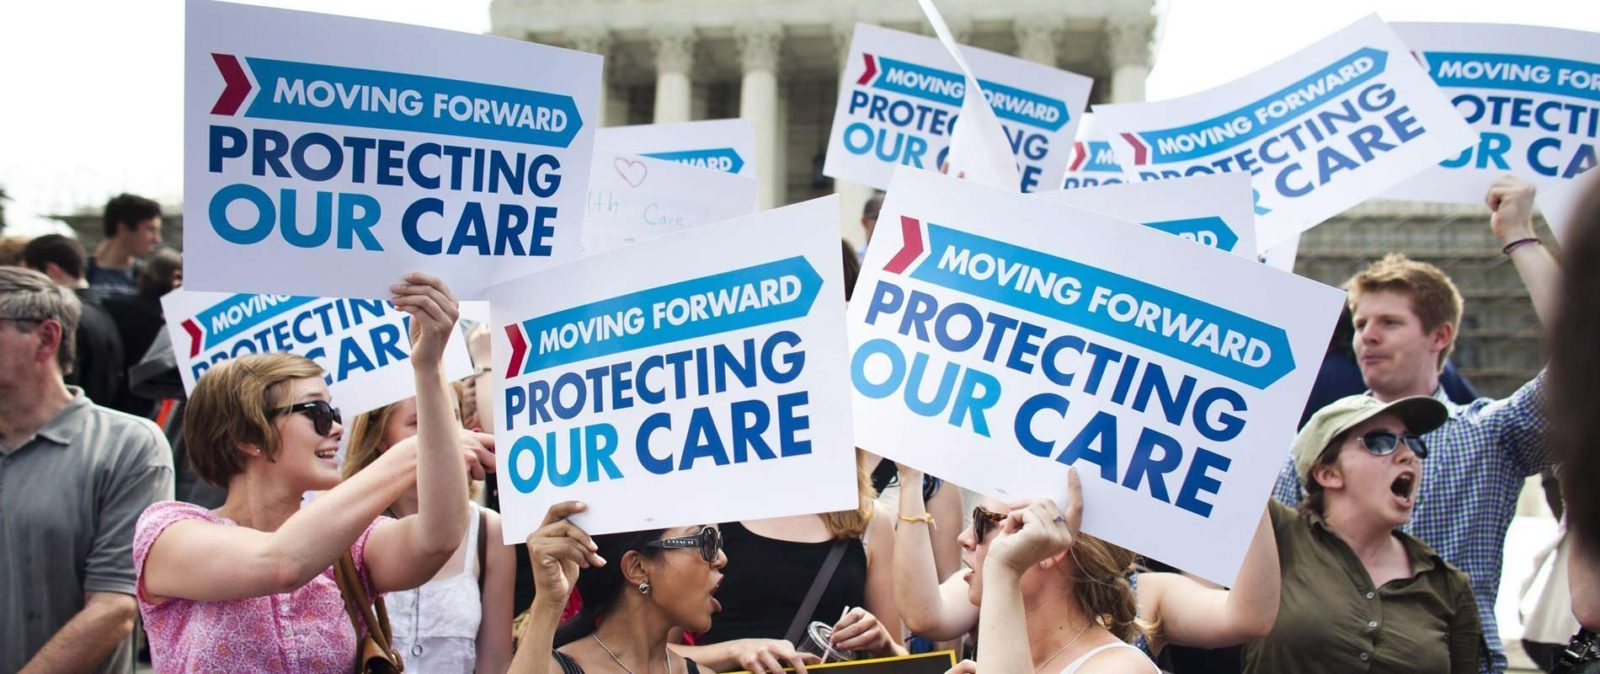 Obamacare: A View From The Middle by Wally Pinkard